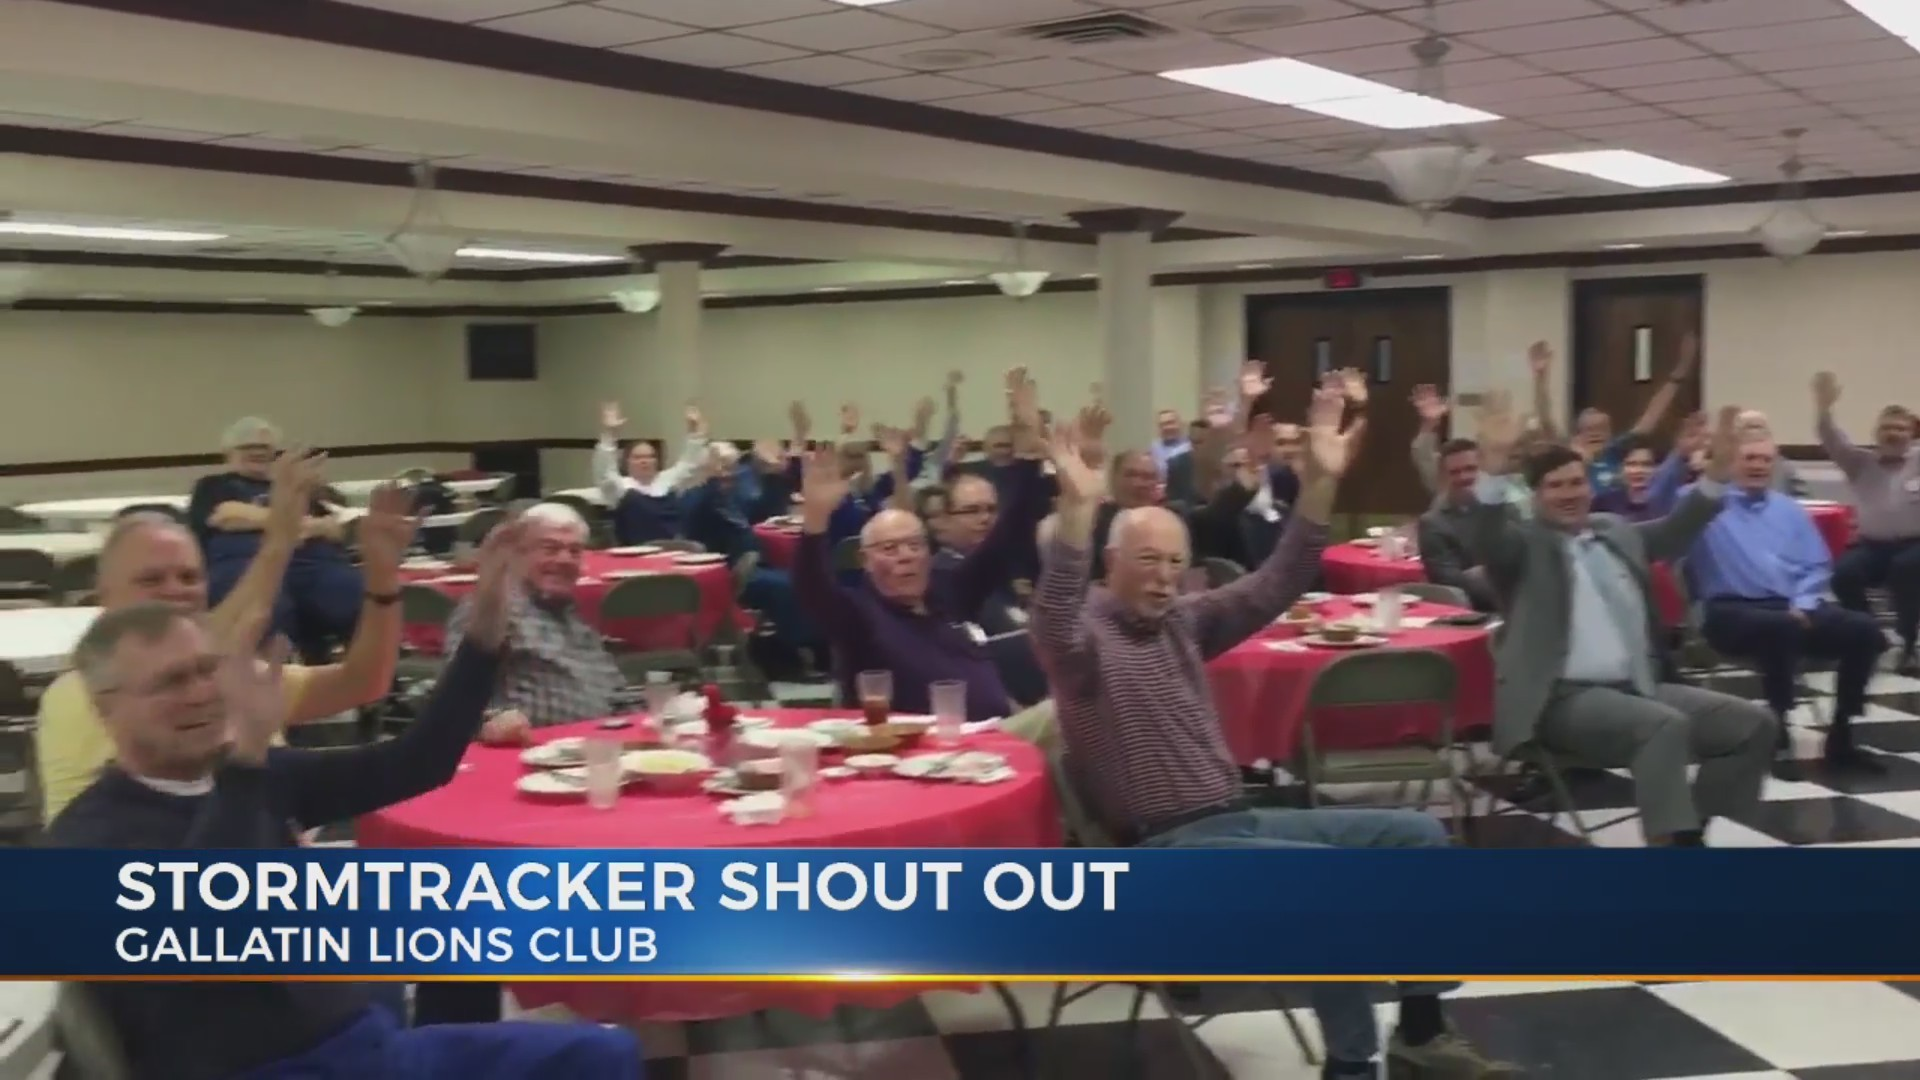 Storm Tracker Shout out at the Gallatin Lions Club